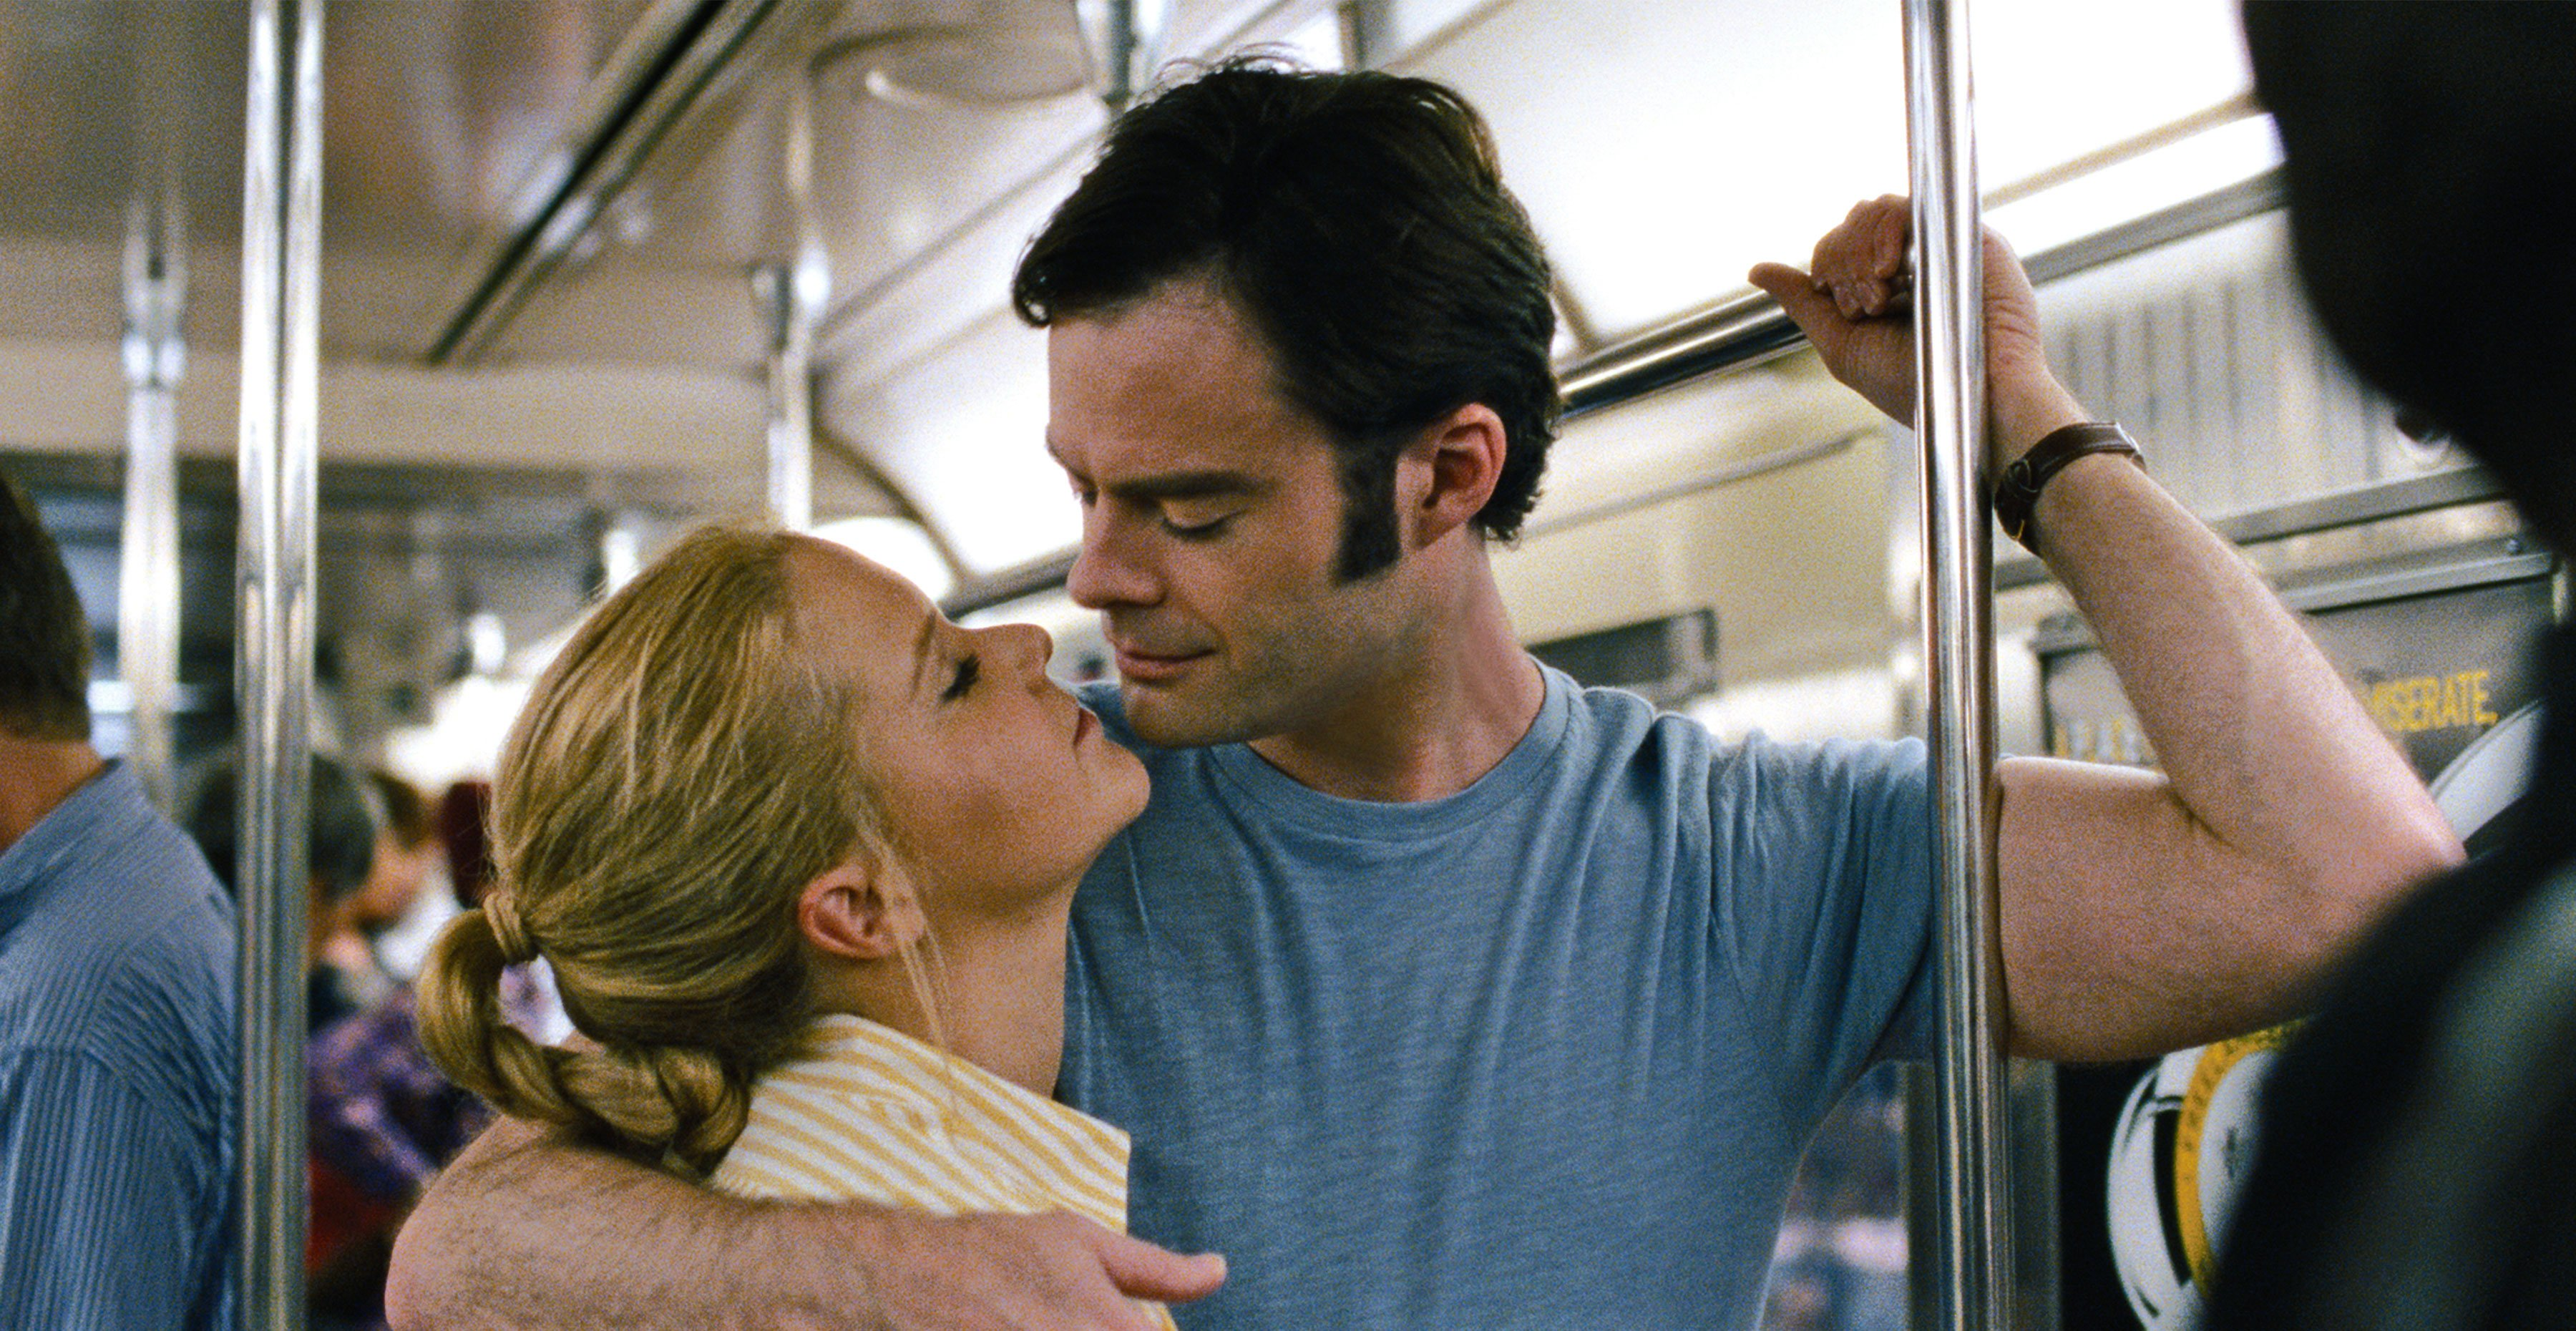 trainwreck-amy-schumer-bill-hader.jpg